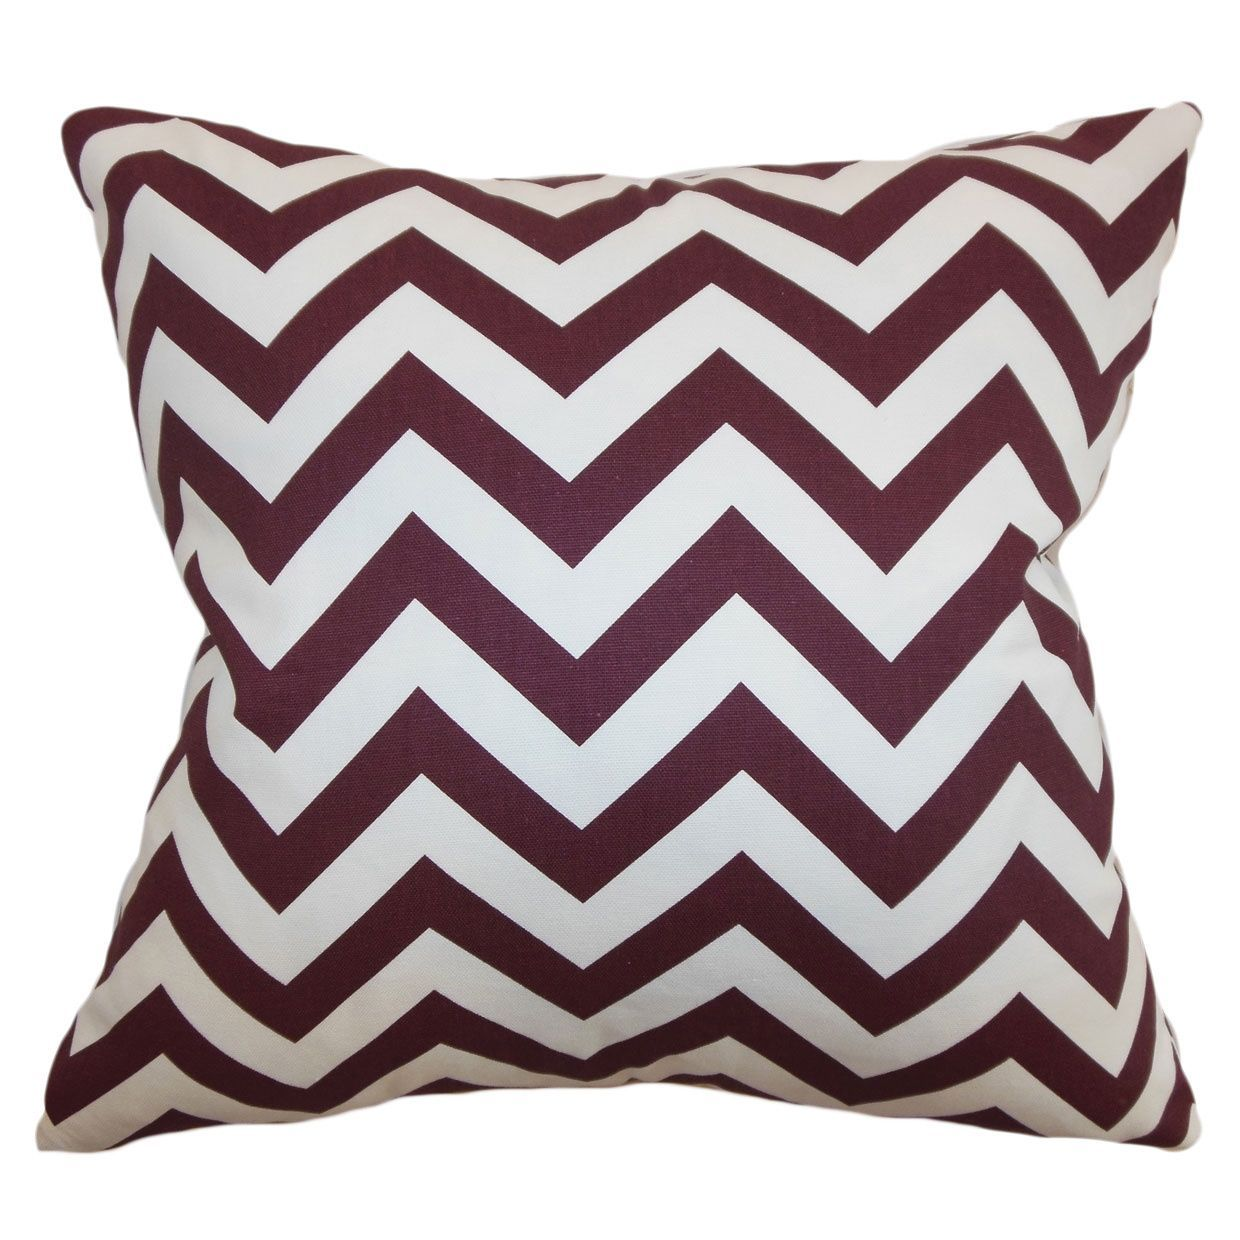 Overstock Com Online Shopping Bedding Furniture Electronics Jewelry Clothing More The Pillow Collection Zigzag Pillow Throw Pillows